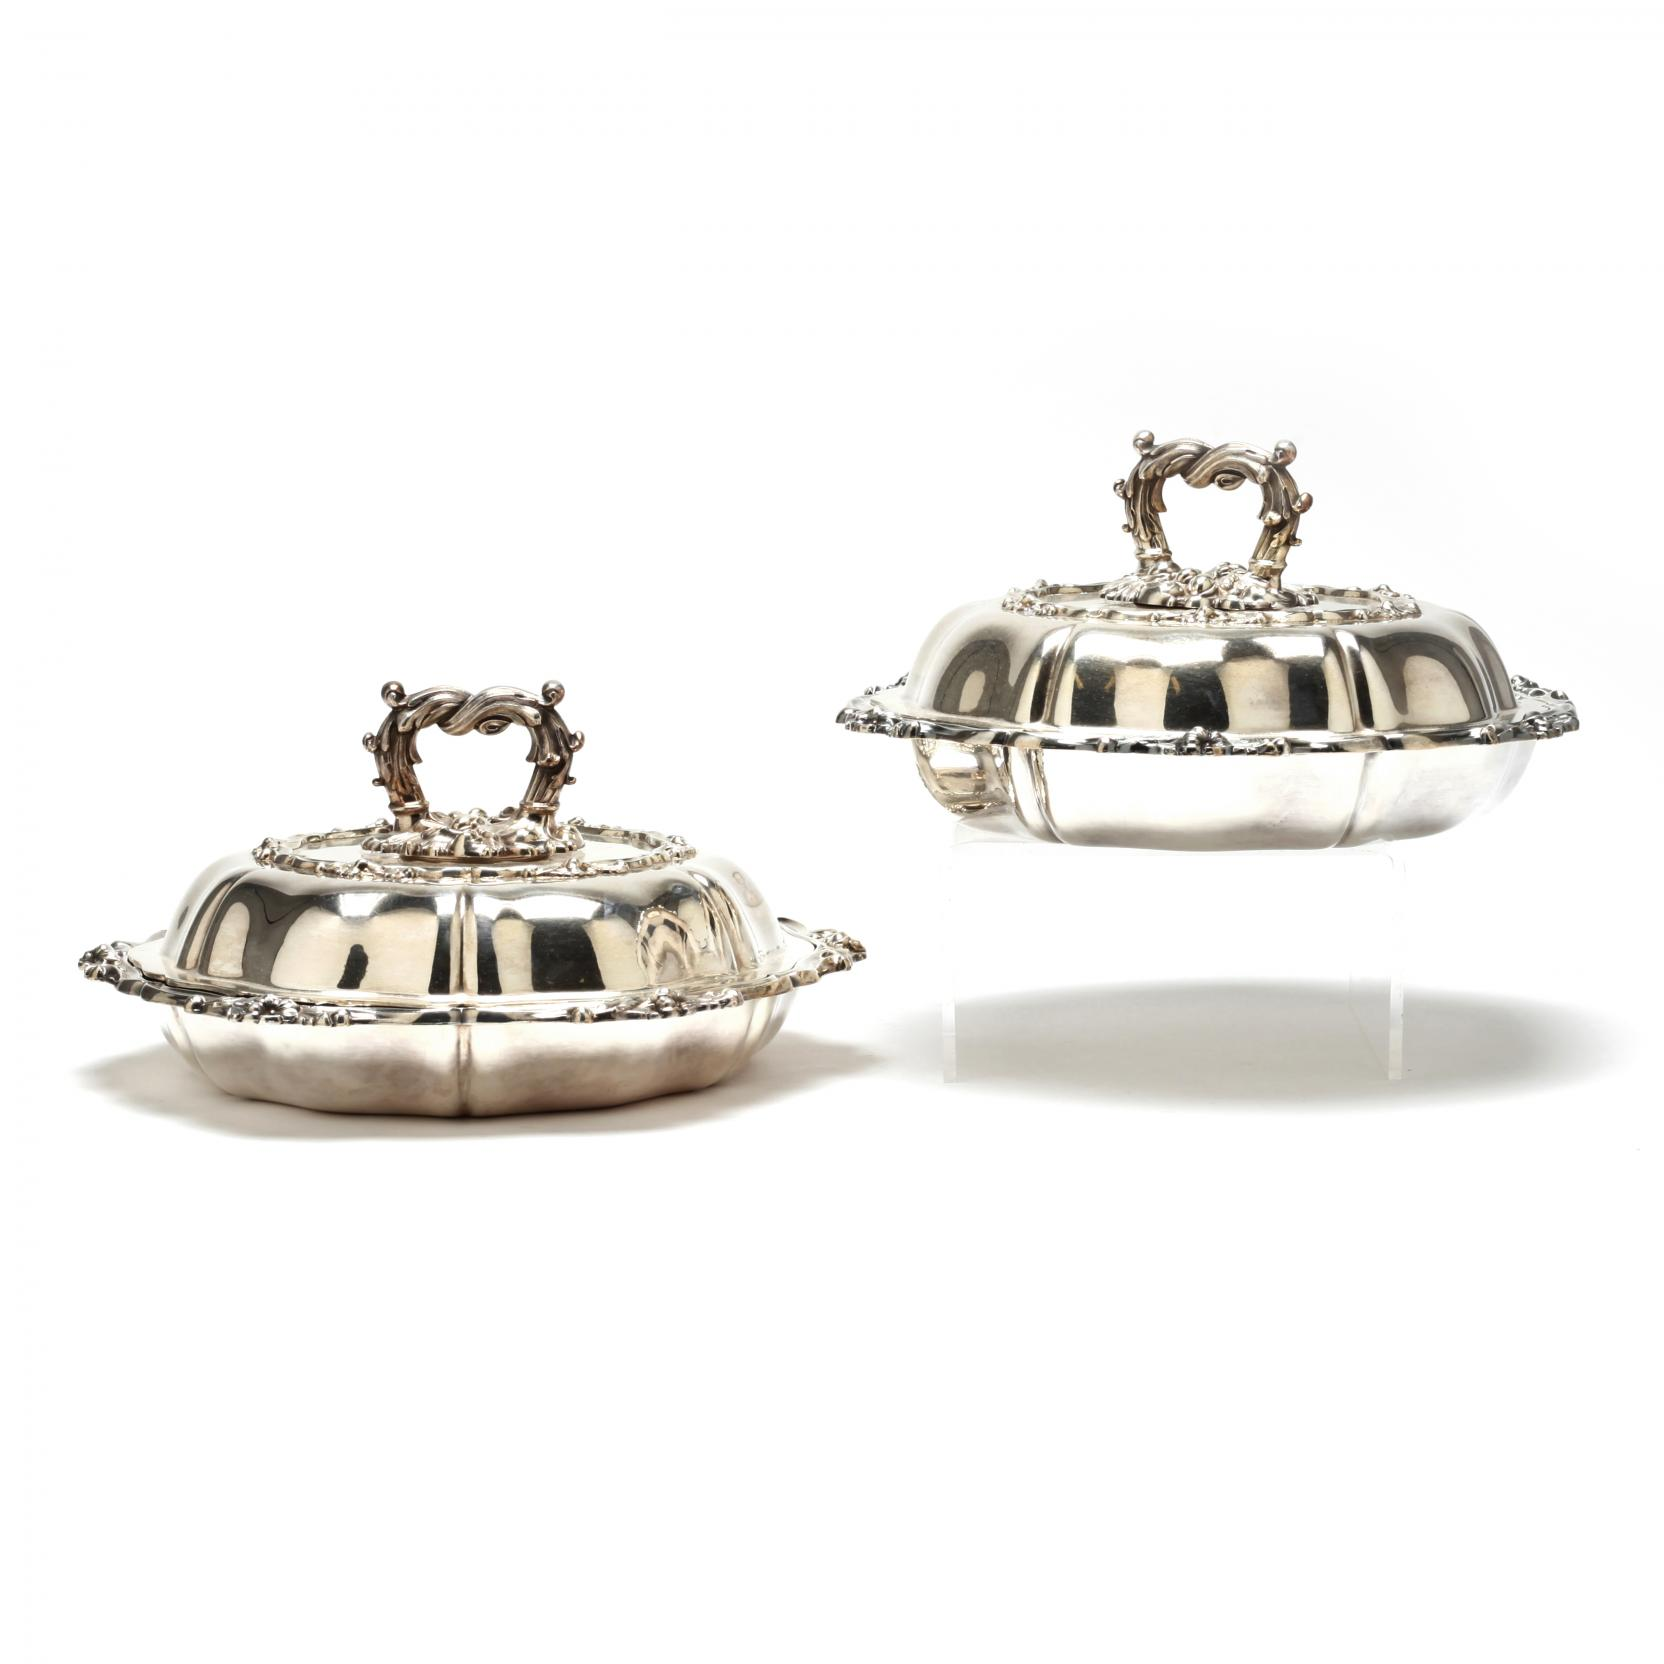 a-pair-of-english-silverplate-entree-dishes-and-covers